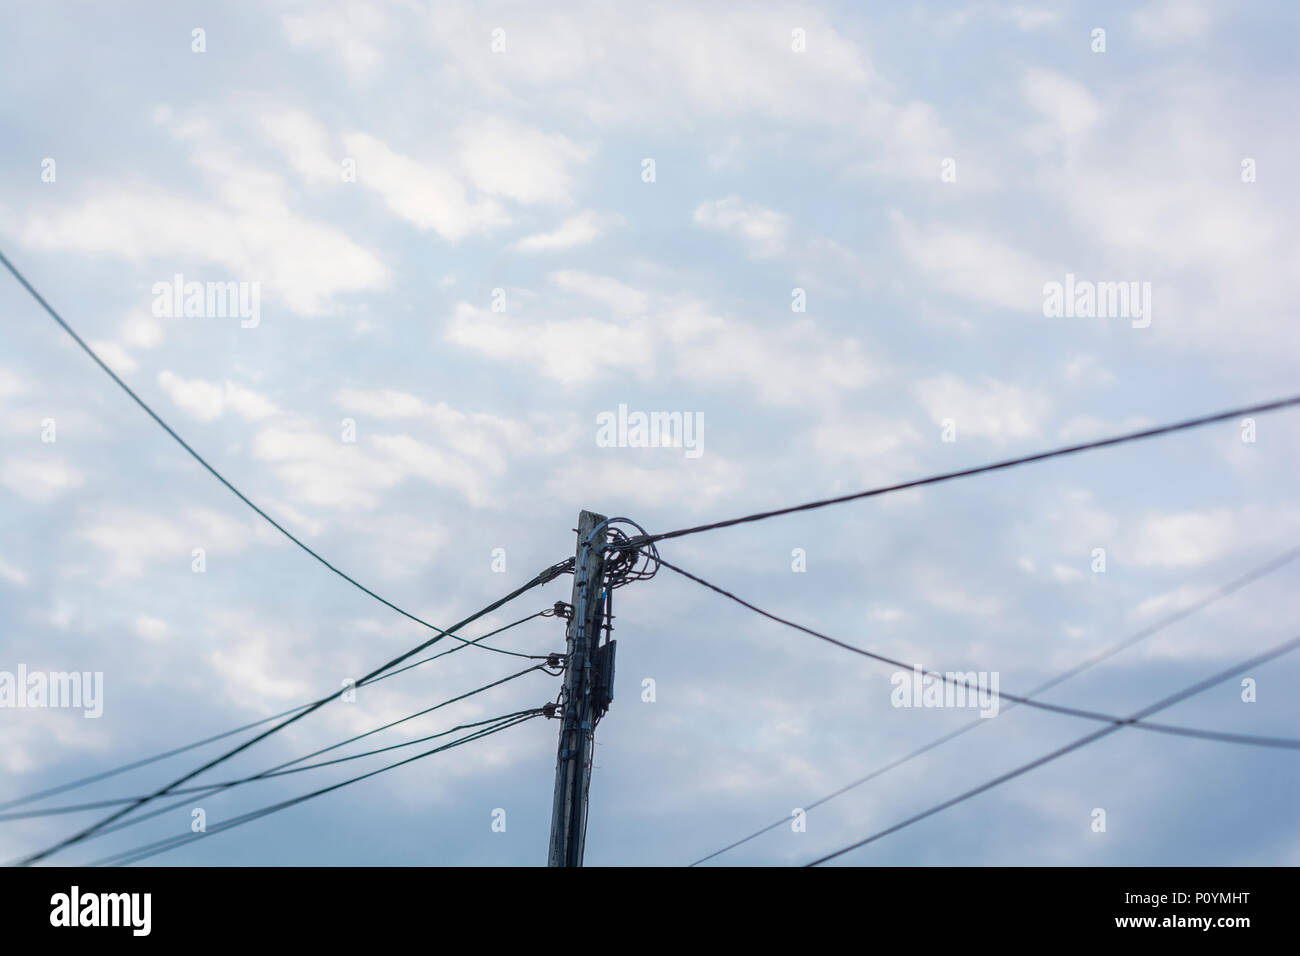 Overhead rural electricity distribution cables against